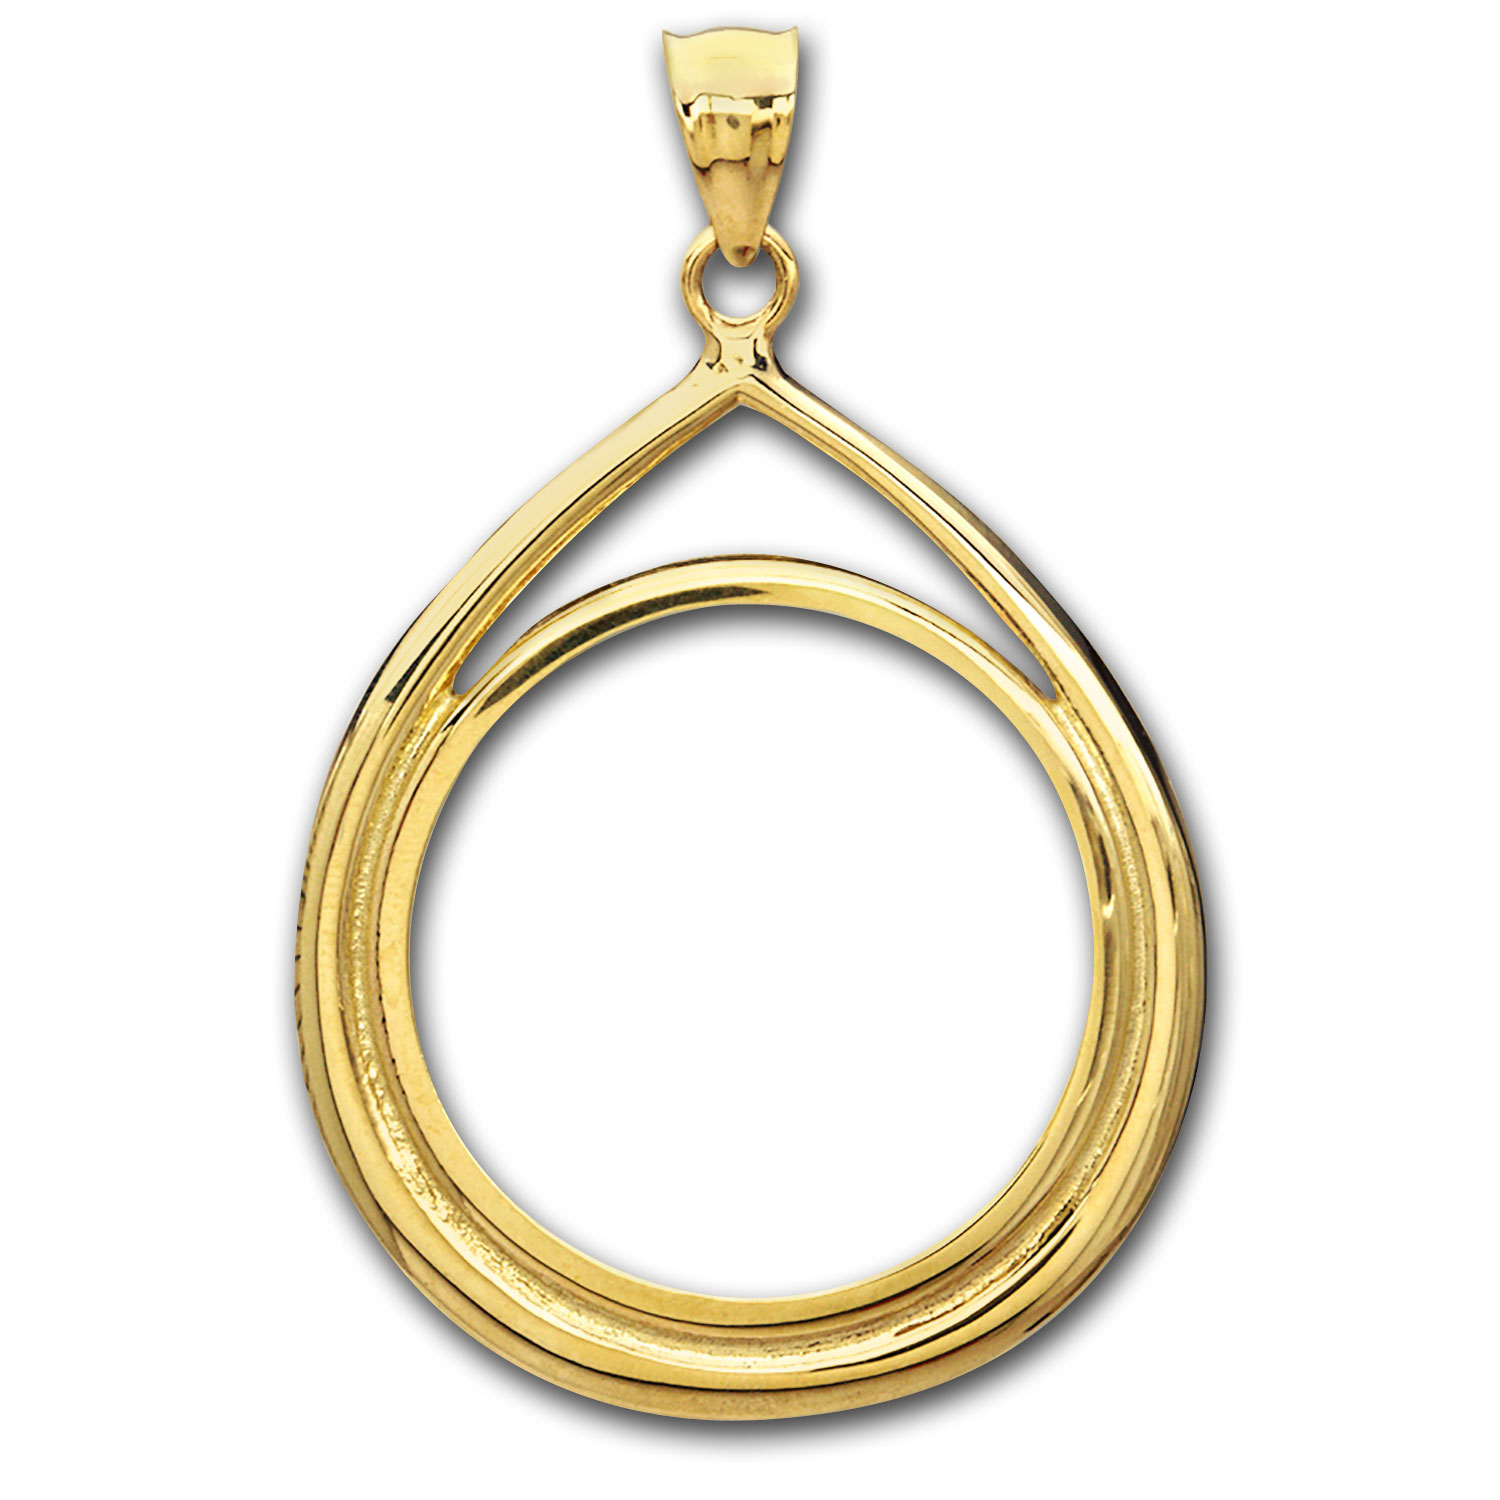 14K Gold Prong Tear Drop Coin Bezel - 14 mm